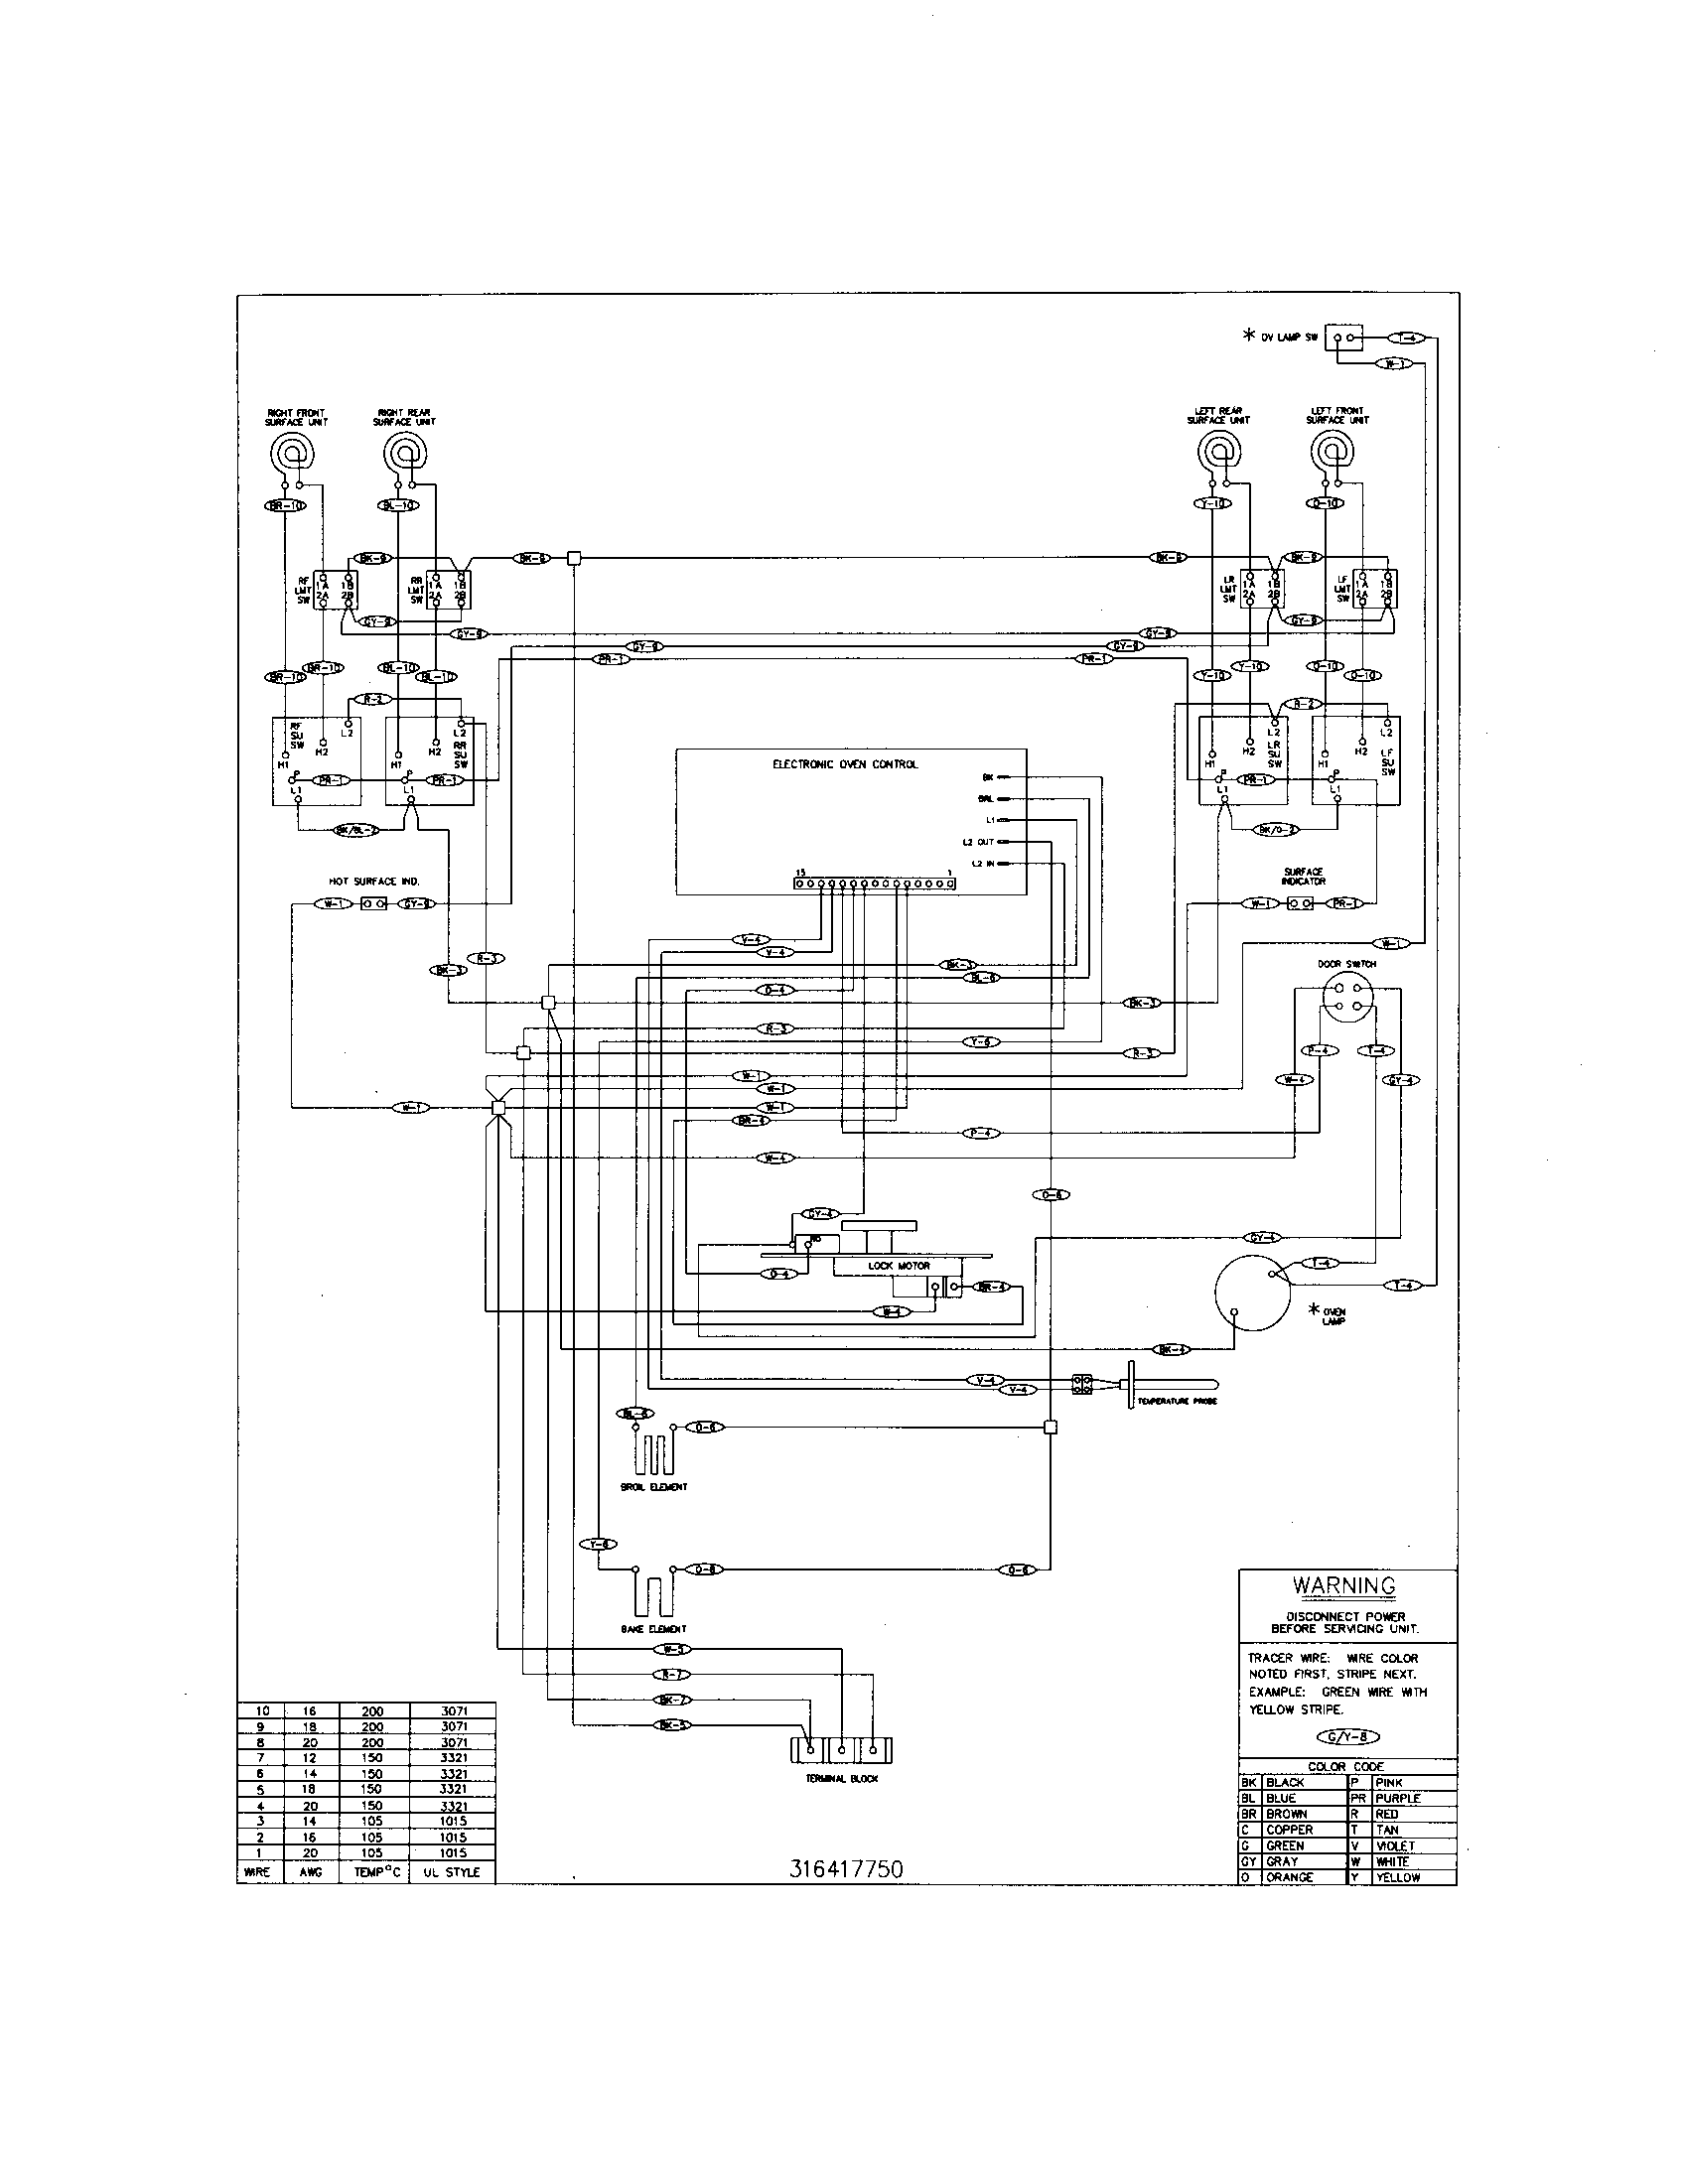 hight resolution of westinghouse 77020 wiring diagram wiring diagram blog westinghouse 77020 wiring diagram wiring library westinghouse 77020 wiring